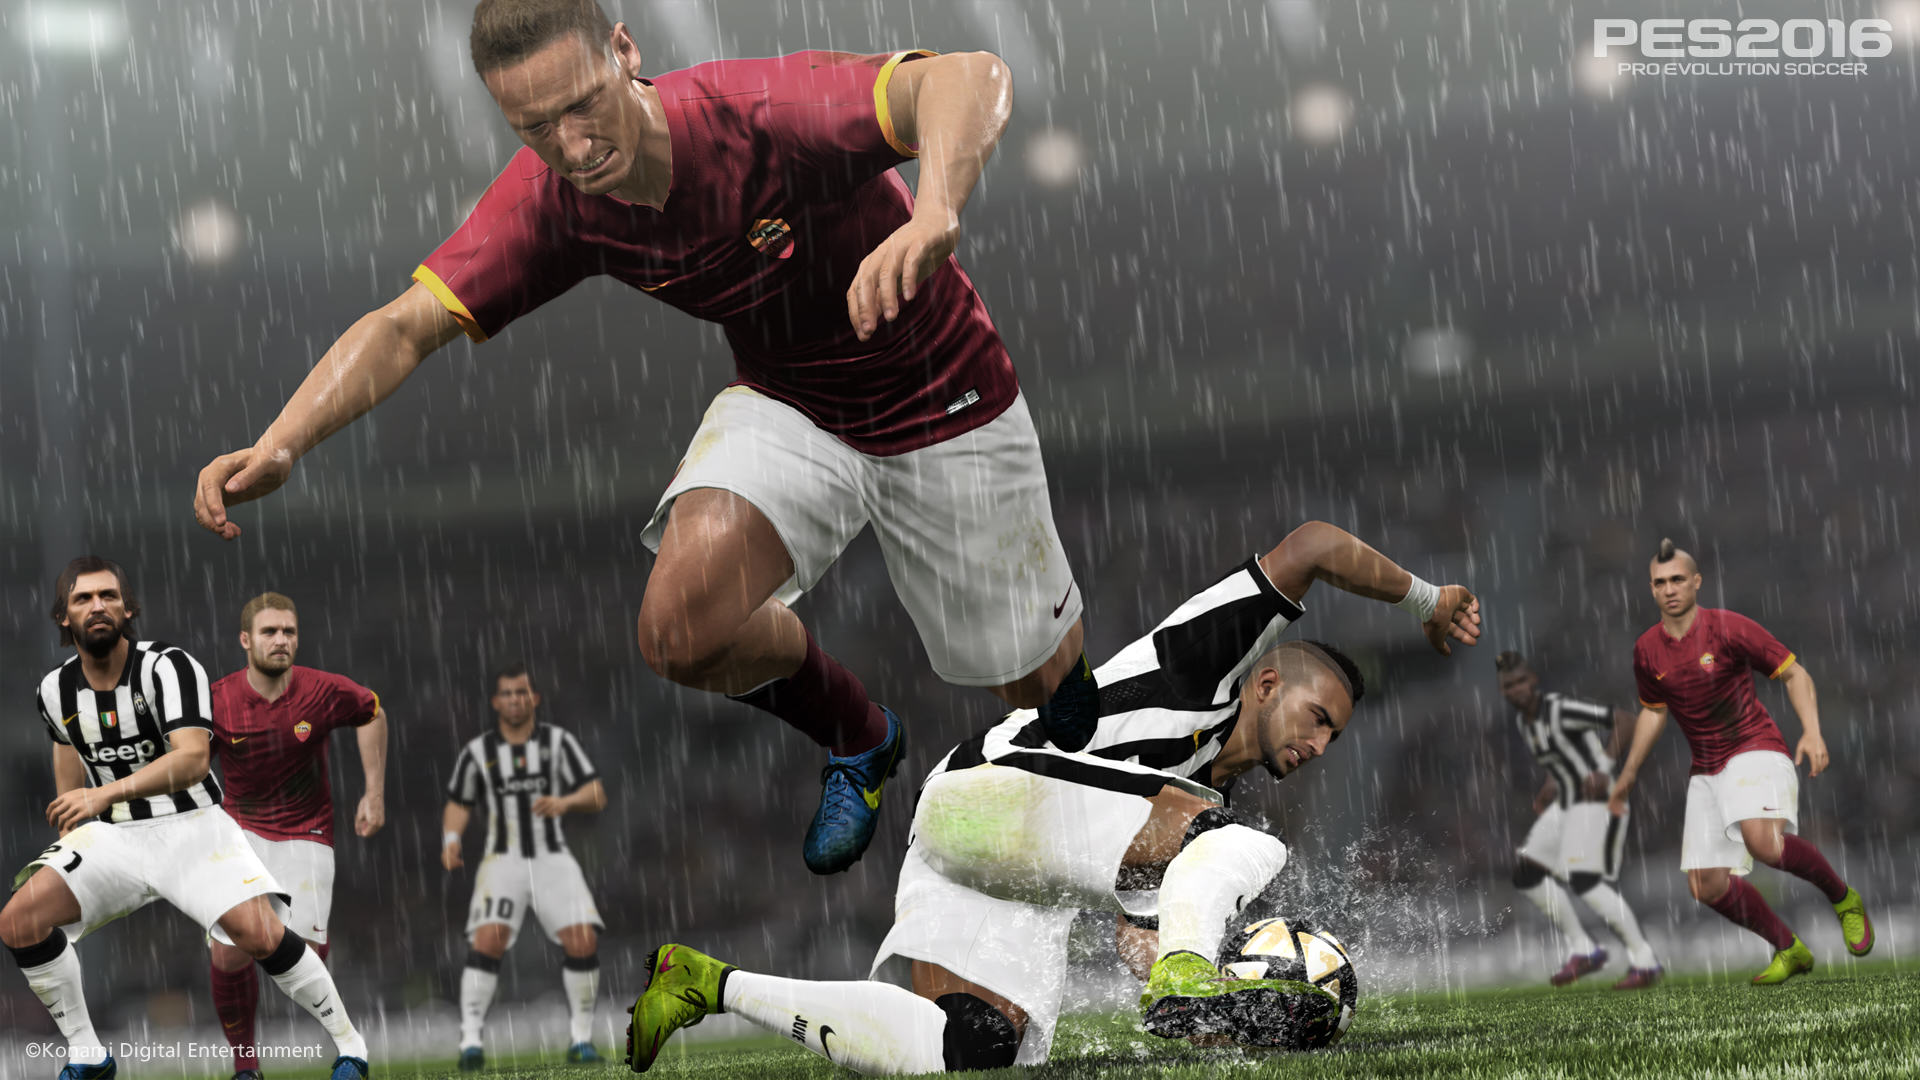 Konami Confirm PES 2016 Free To Play Coming Soon To Playstation PES2016 weather 01